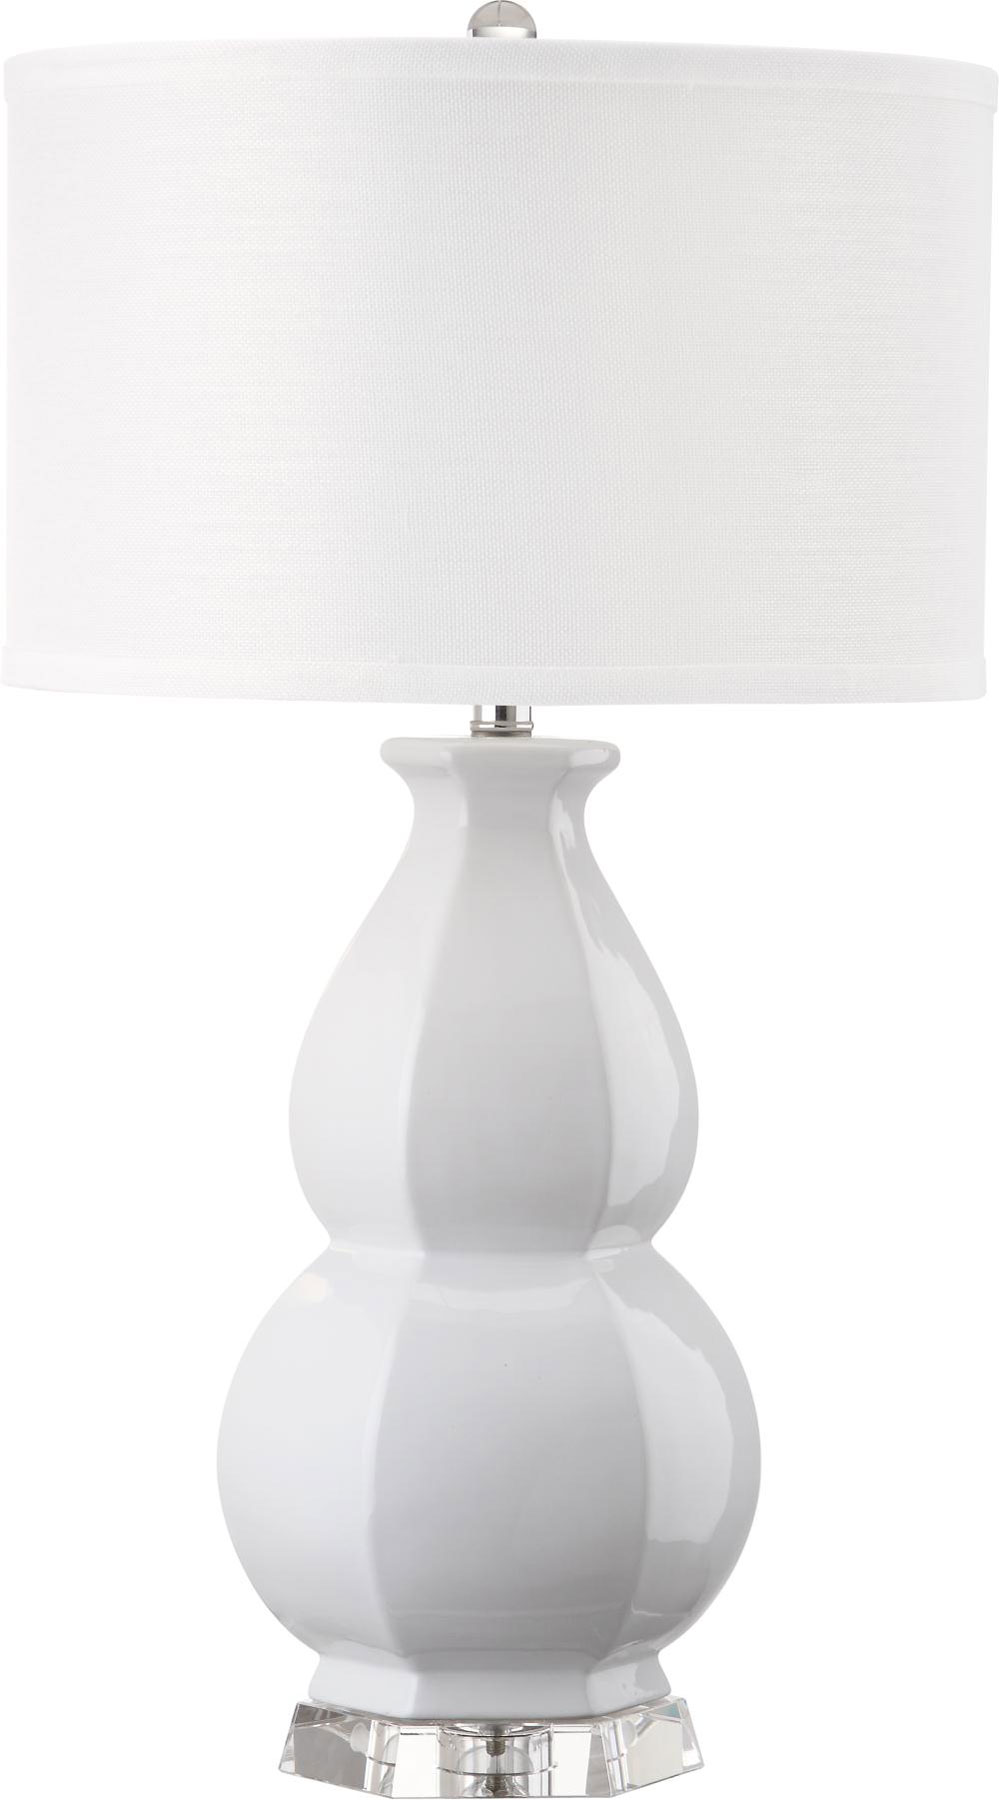 Lit4245c table lamps lighting by safavieh juniper 30 inch h white table lamp lit4245c aloadofball Images